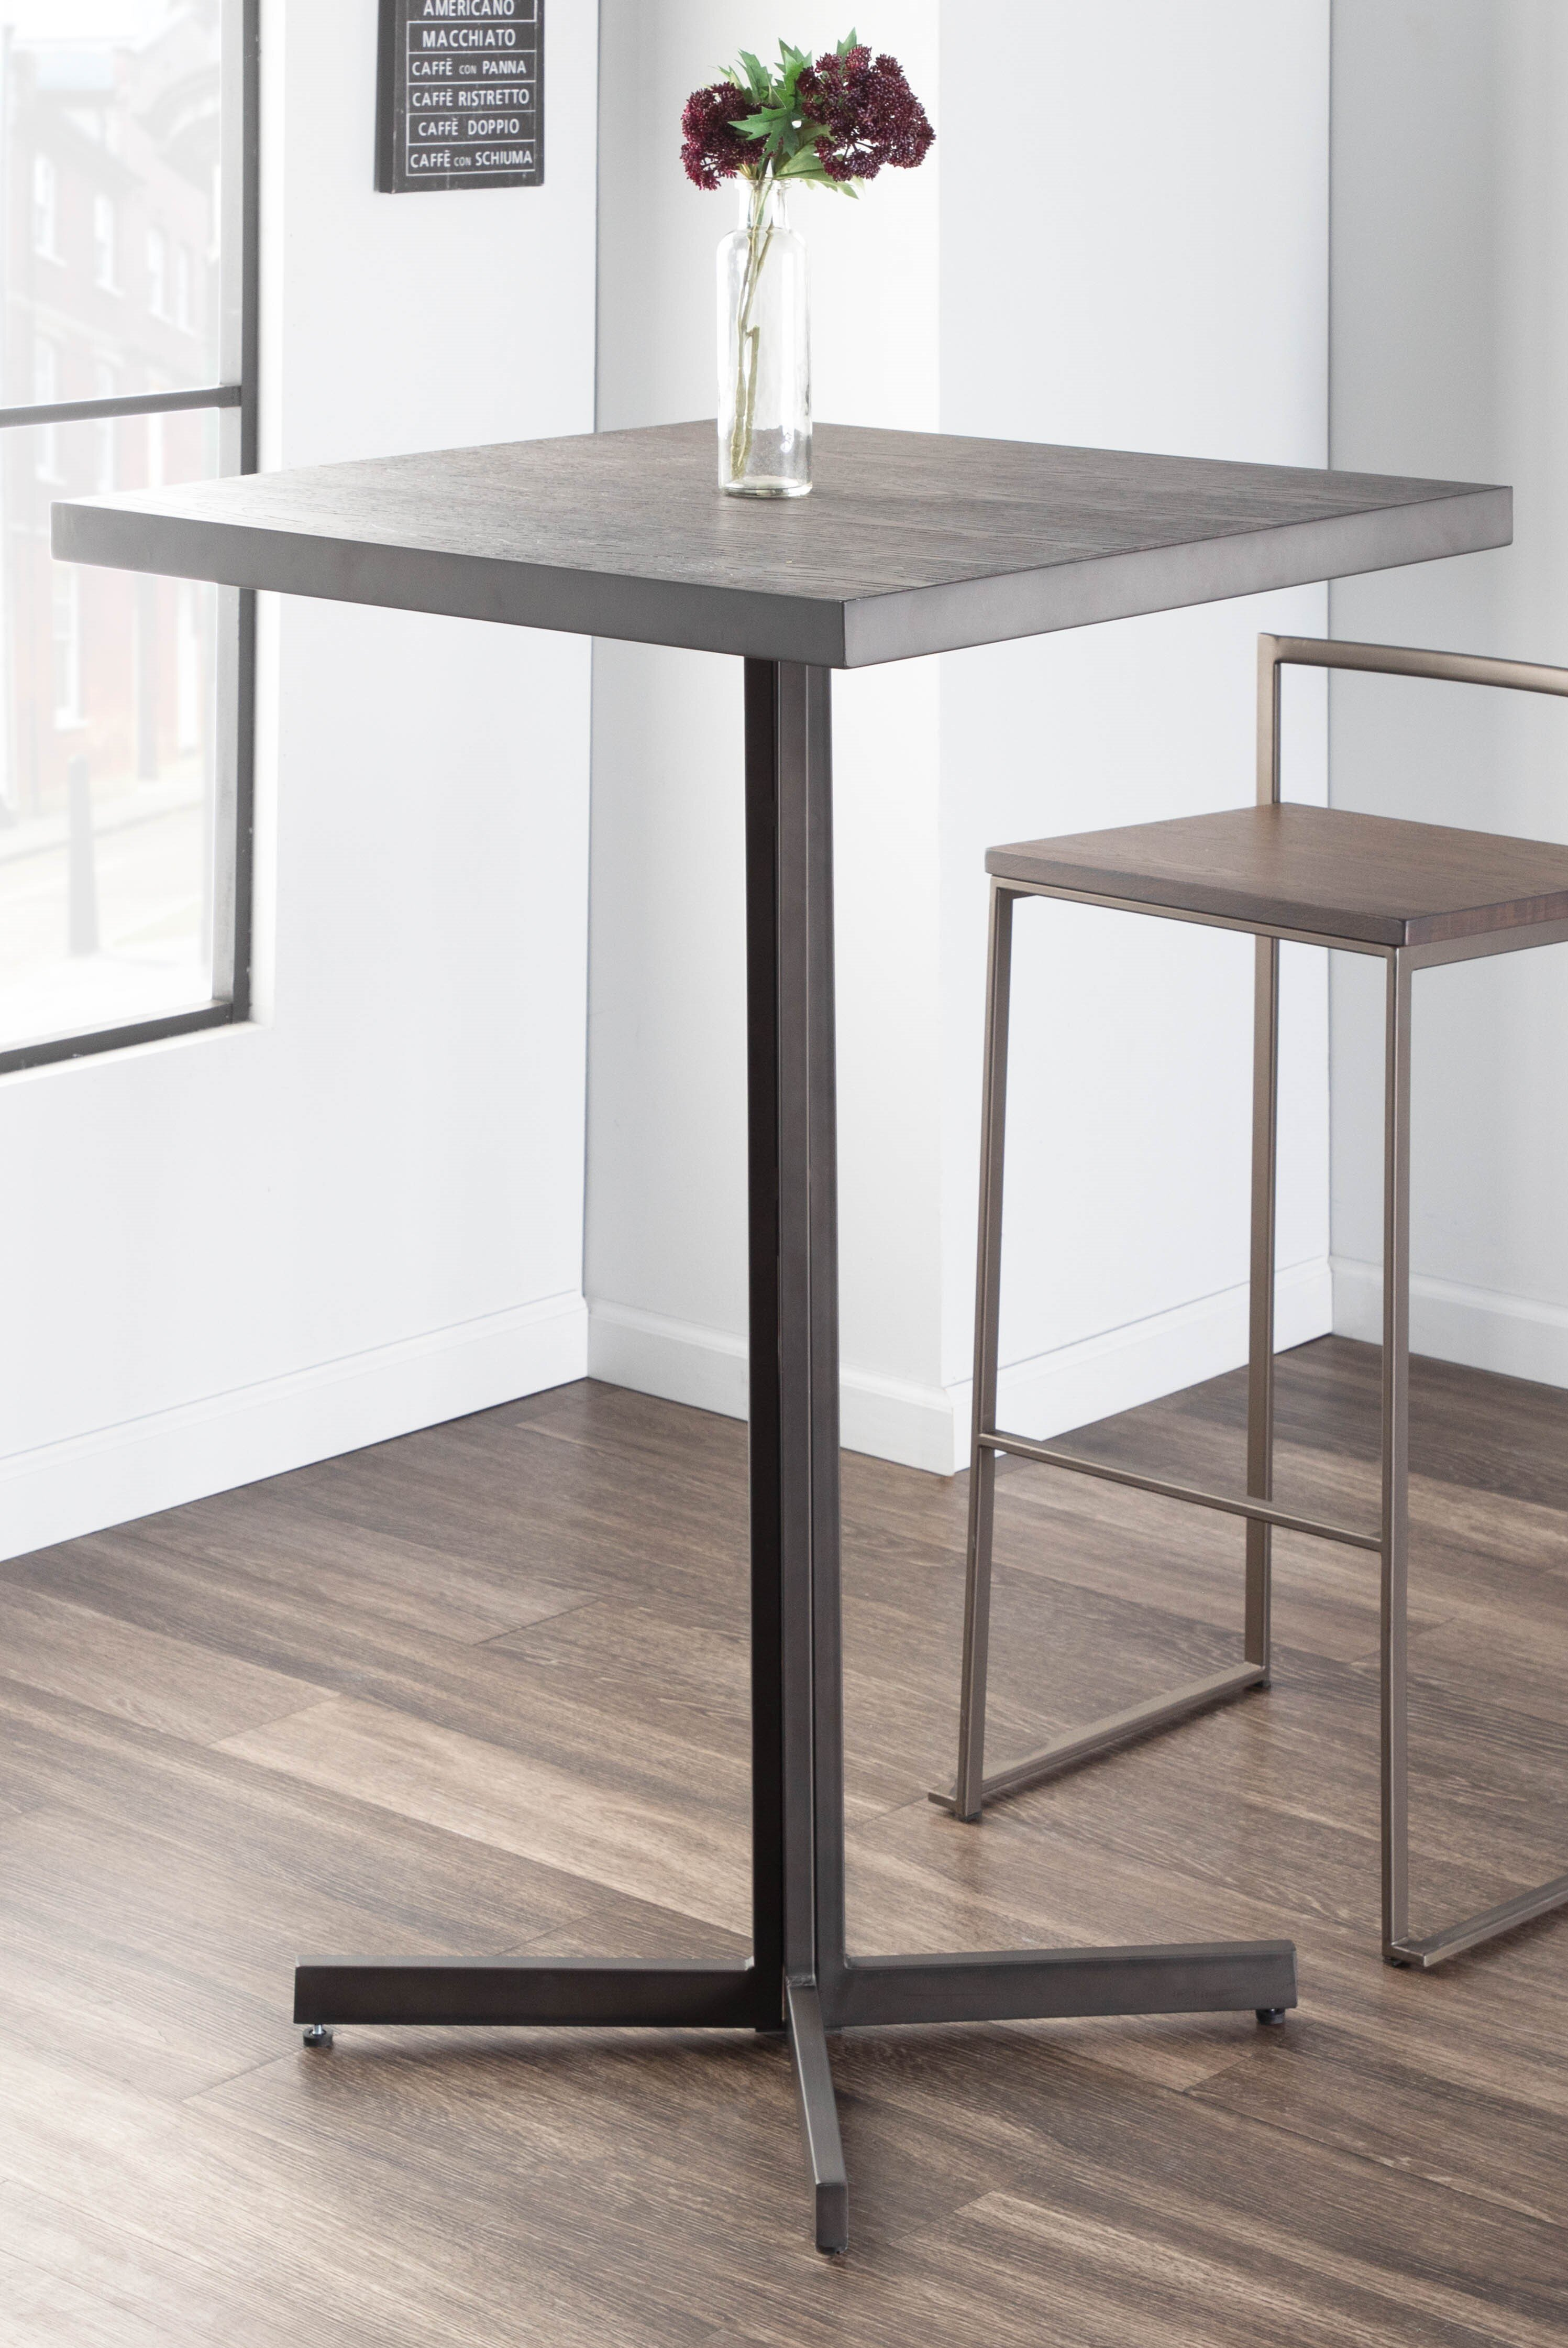 Bamboo Pub Table Kitchen Dining Tables You Ll Love In 2021 Wayfair